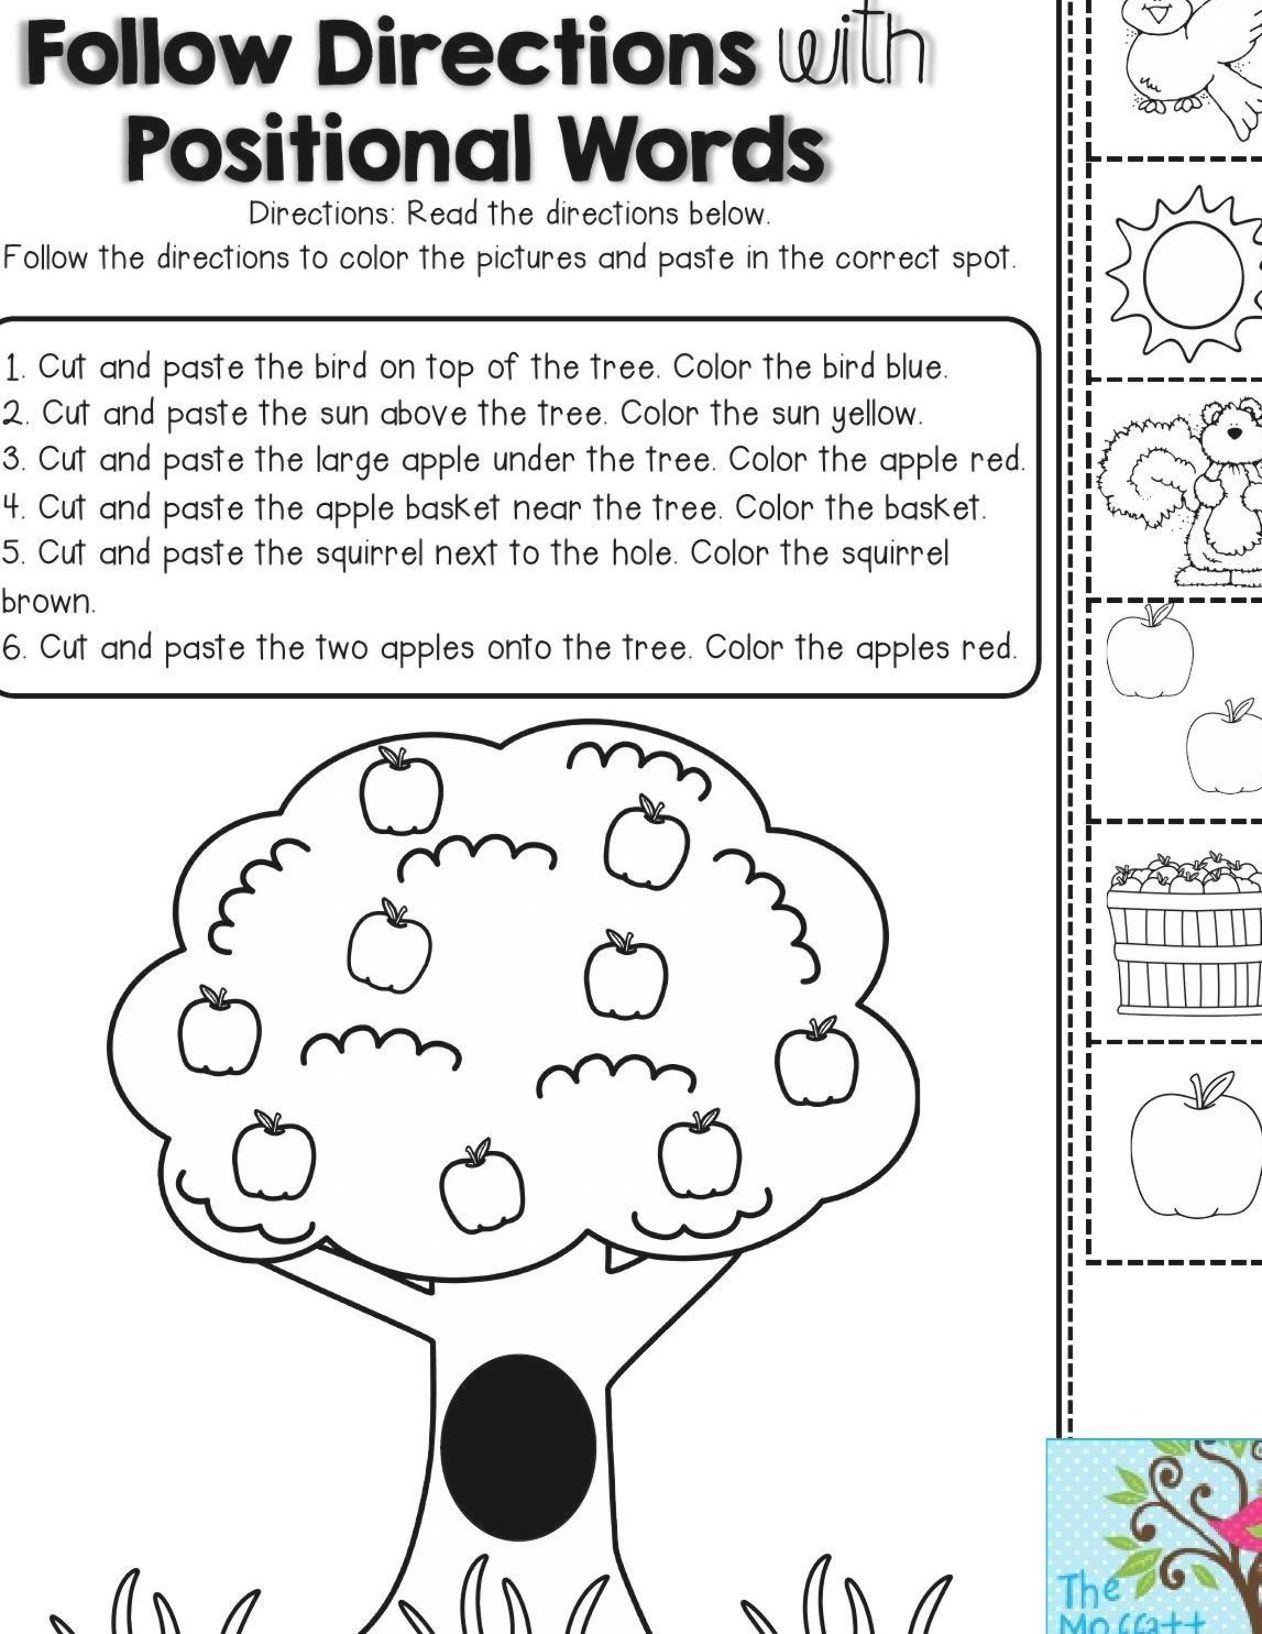 medium resolution of Follow Directions with Positional Words- fun activity for First Grade to  help stu…   Listening activities for kids